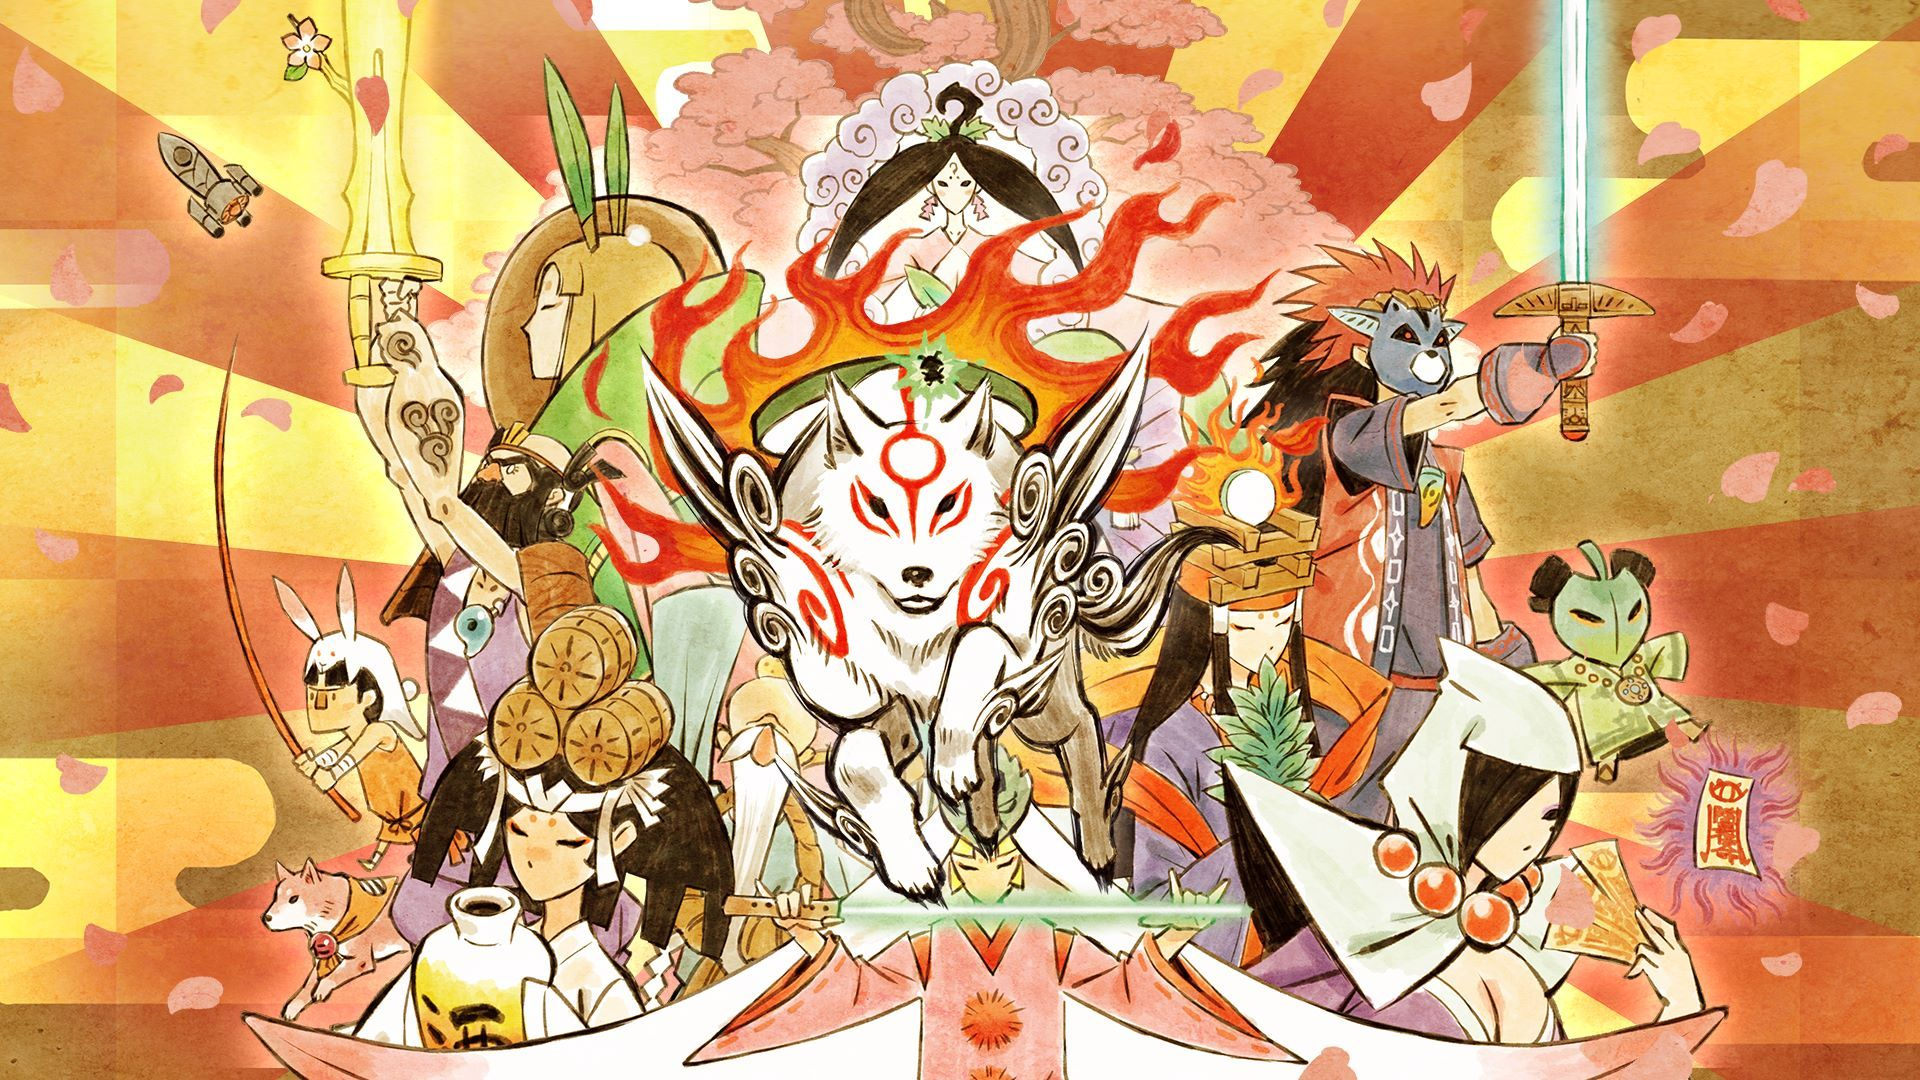 A piece of art for Okami, showing a montage of characters with Amaterasu at the centre - a beautiful white wolf-type dog with swirls of red on her face and shoulders. She trails a nimbus of fire.